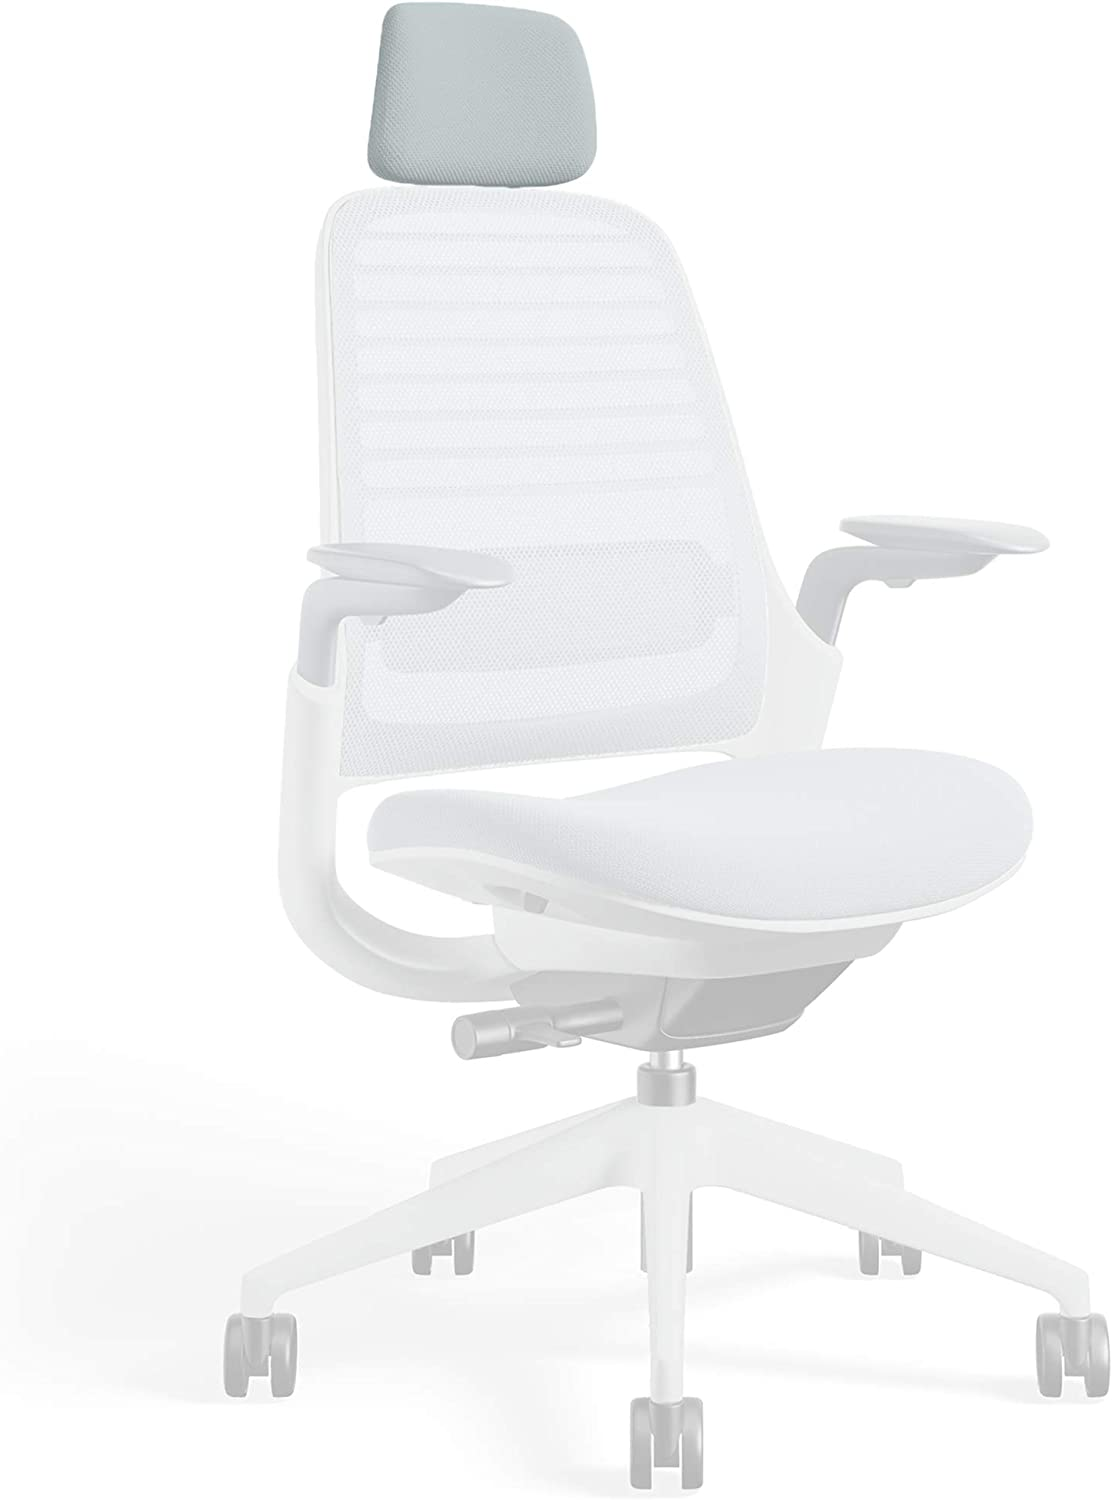 Headrest for Series 1 Task Chair by Steelcase | Seagull Frame, 3D Microknit Fabric | Add-On Part Only (Nickel)